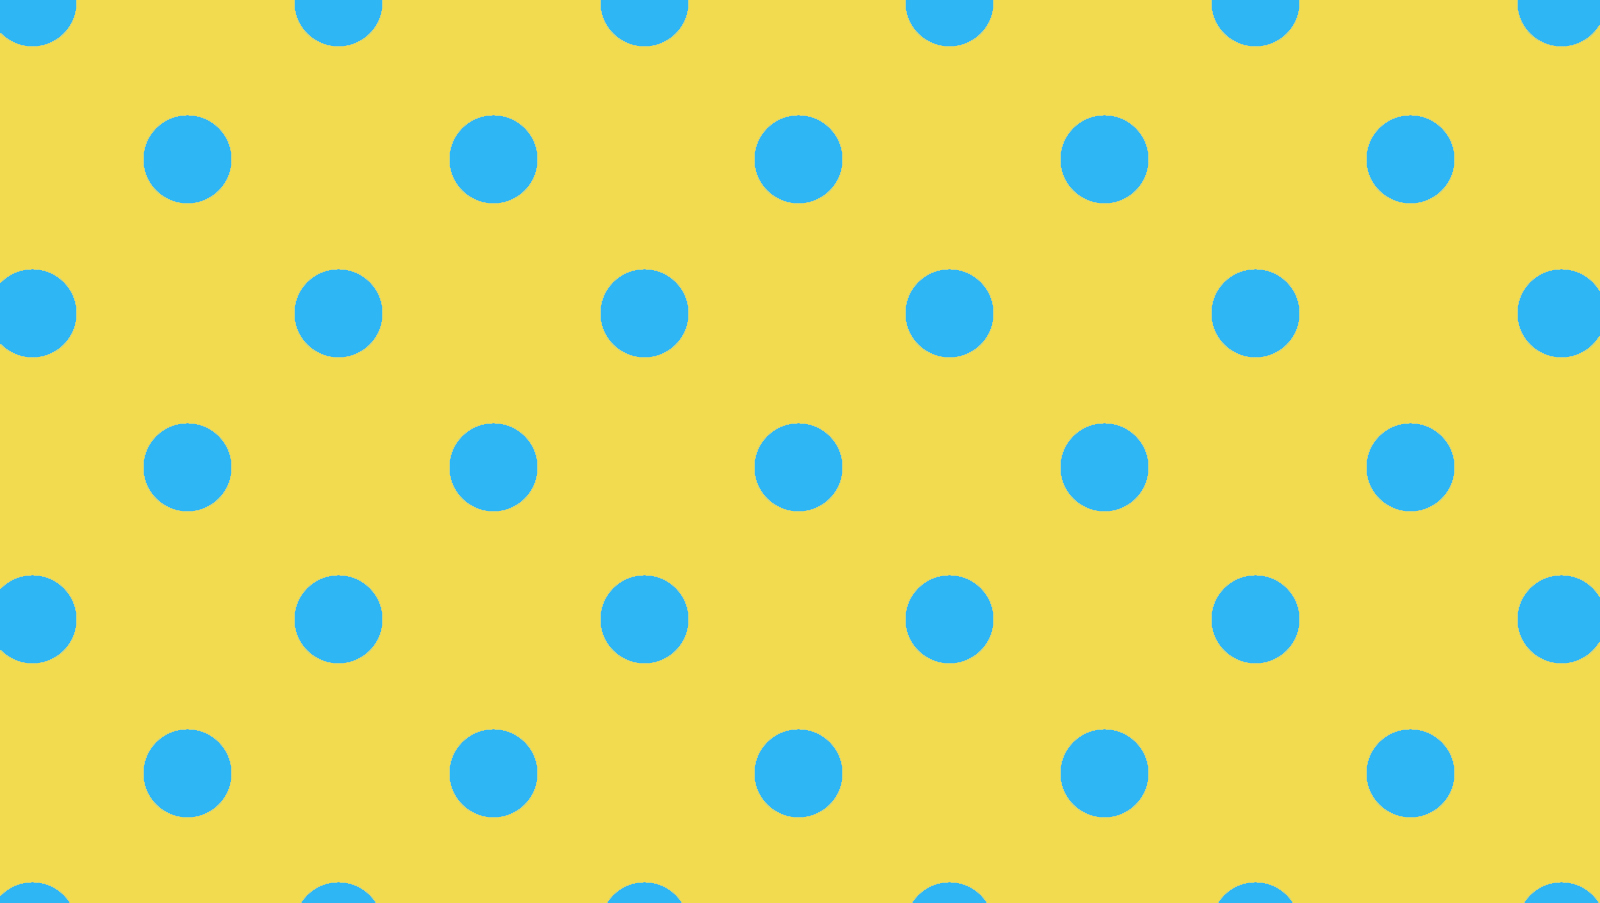 cute yellow abstract polka dots background 10790 dryicons